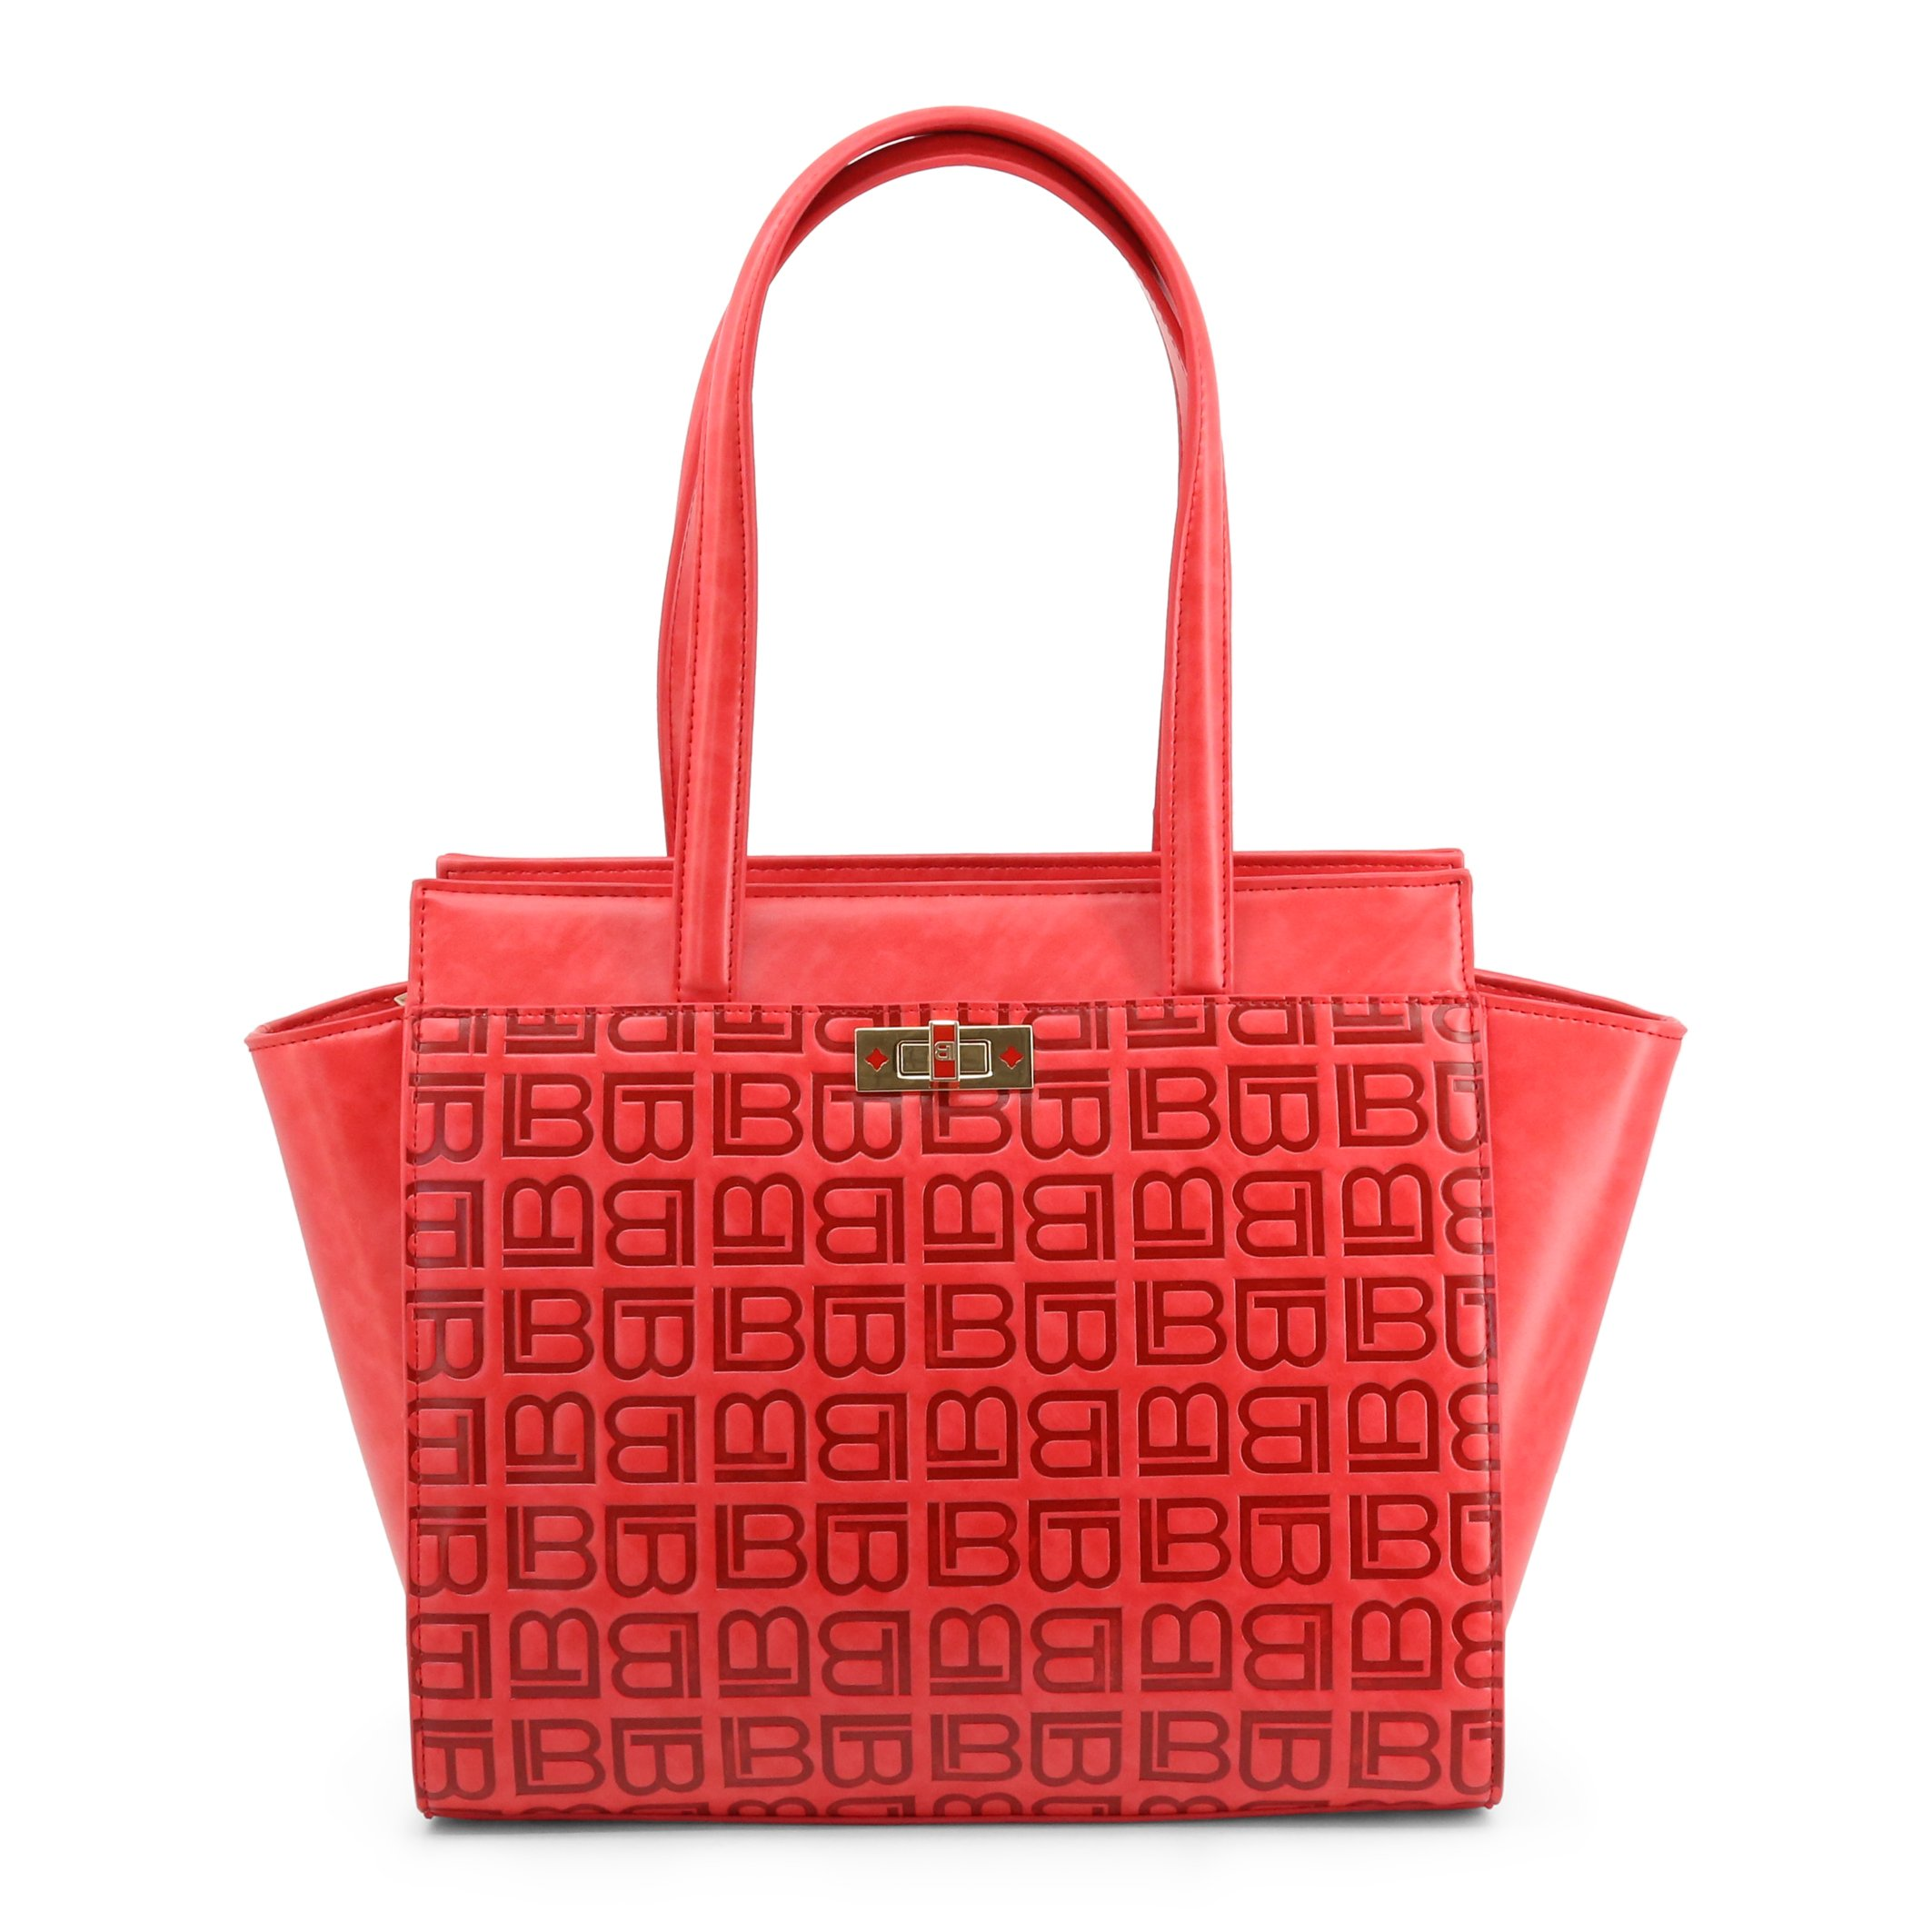 Laura Biagiotti Women's Shoulder Bag Various Colours Rossy_114-2 - red NOSIZE